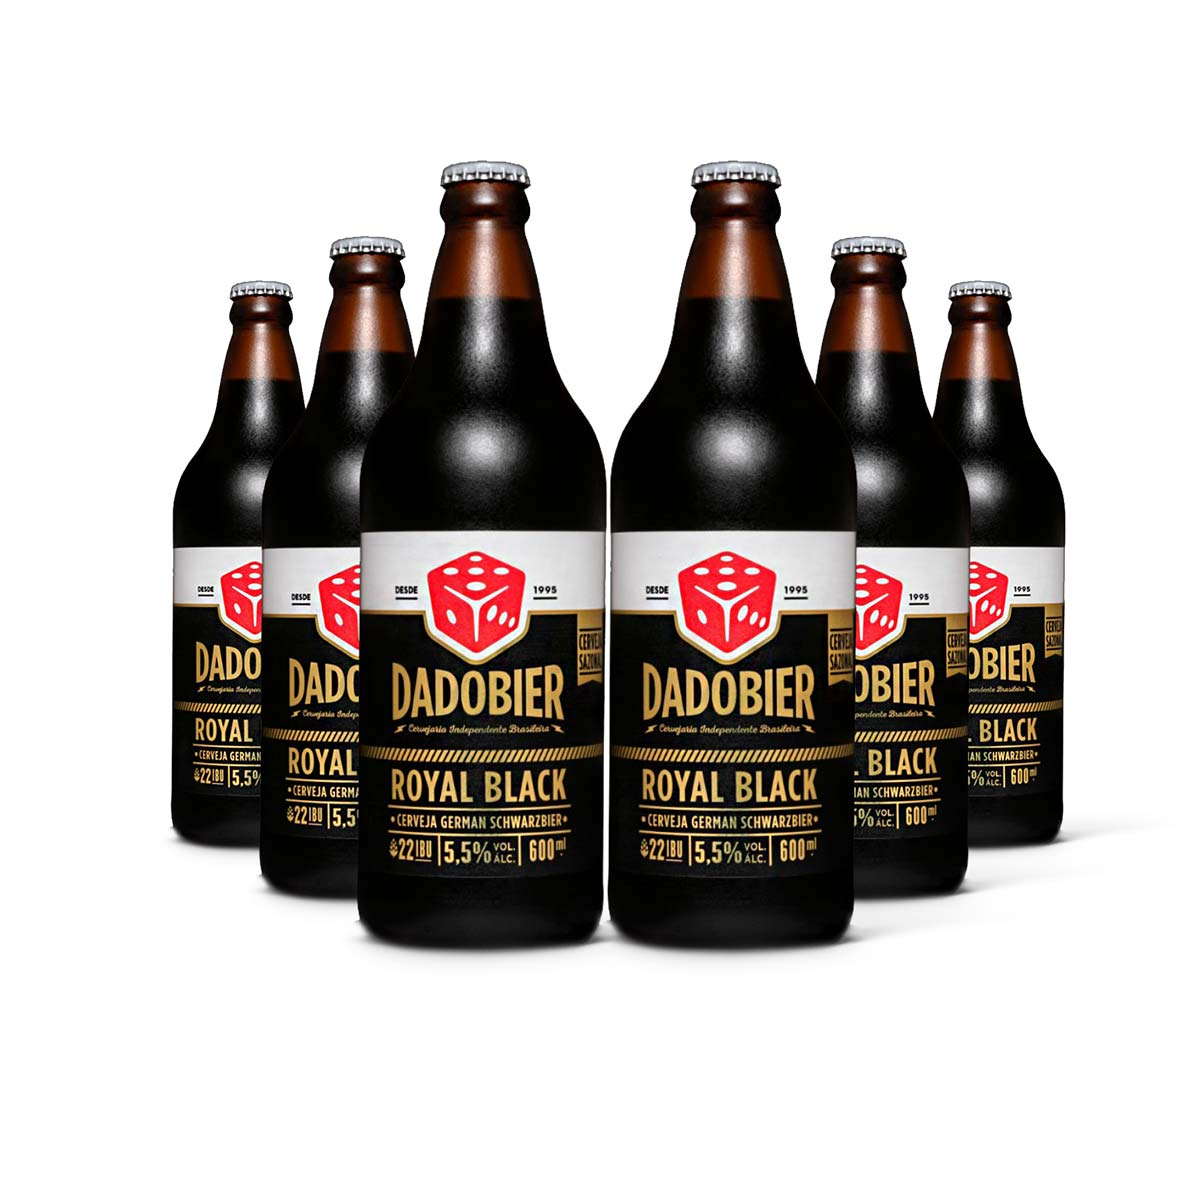 Pack Dado Bier Royal Black 6 cervejas 600ml